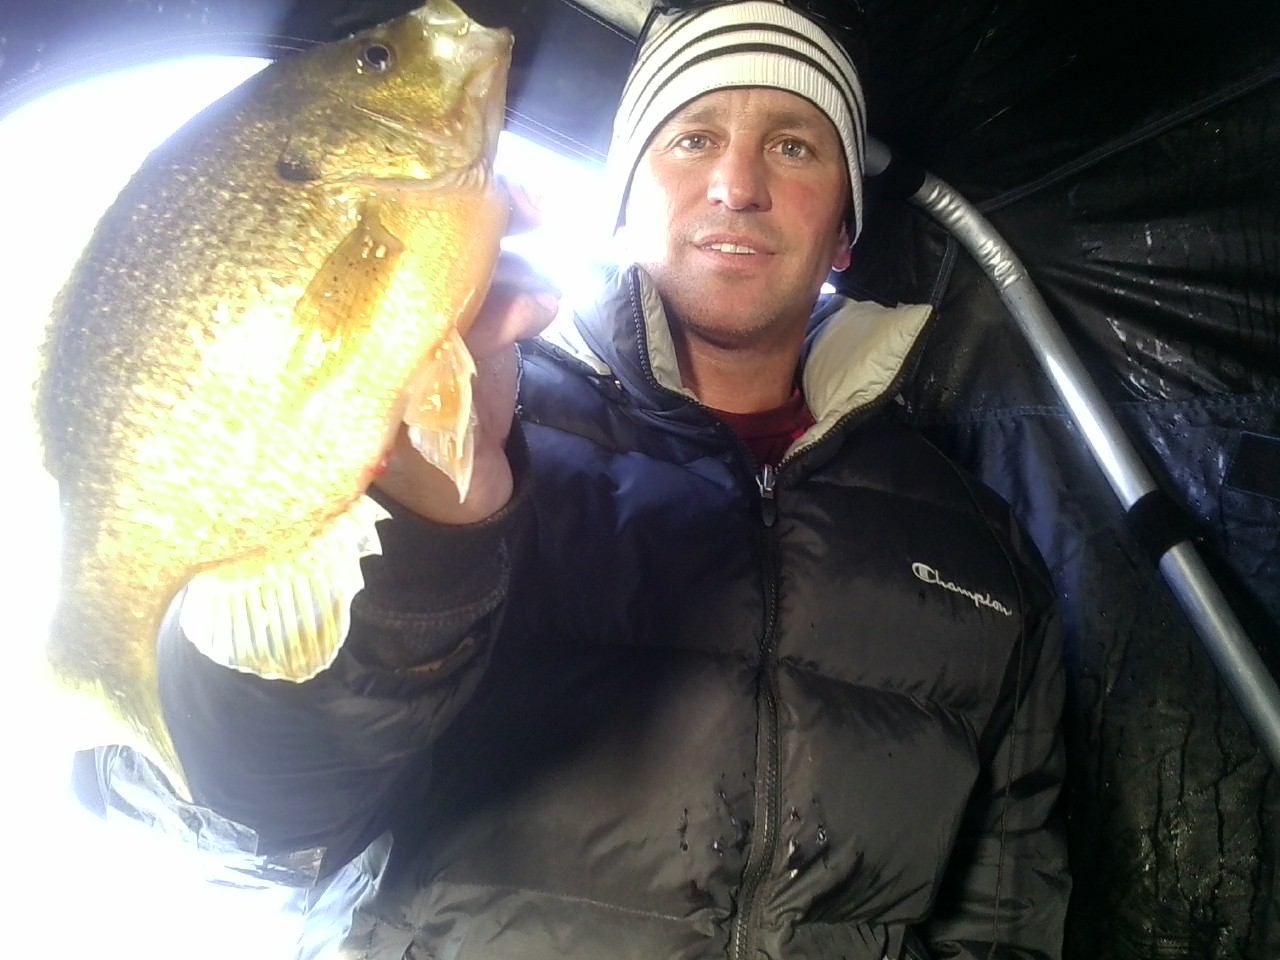 Jason Carlson LeMars Iowa  Had a great day of ice fishing on one of my favorite ponds close to